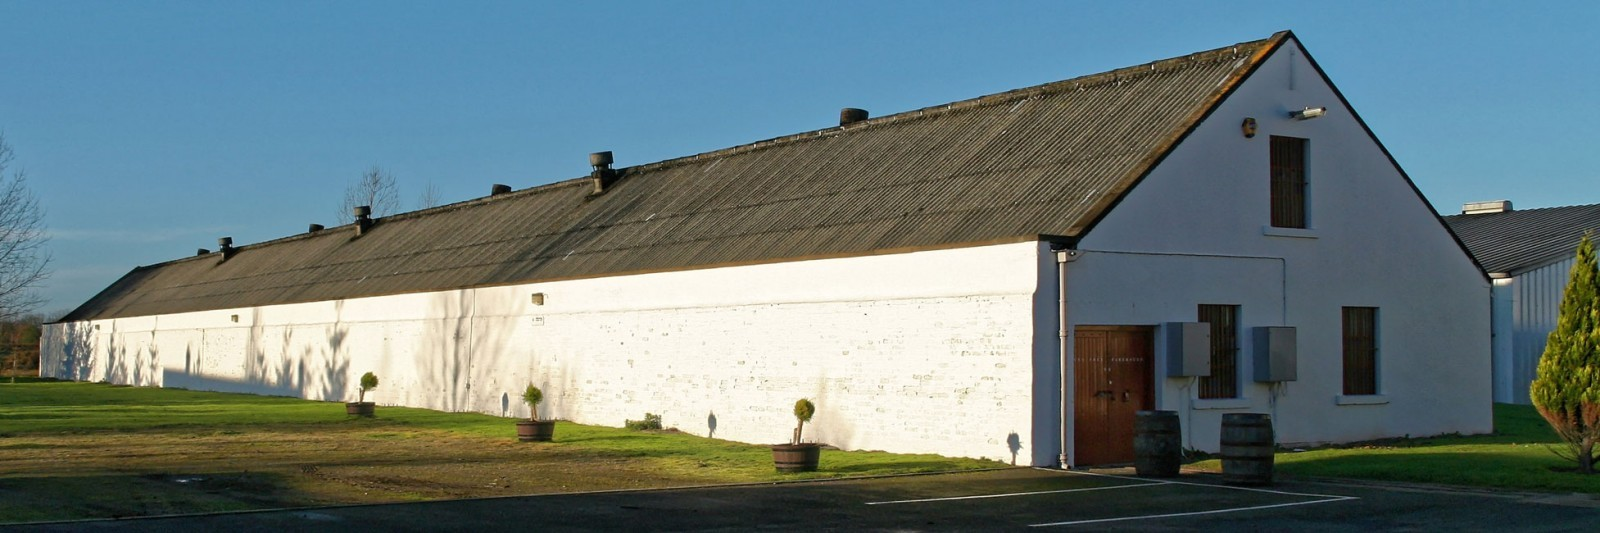 Benromach Warehouse